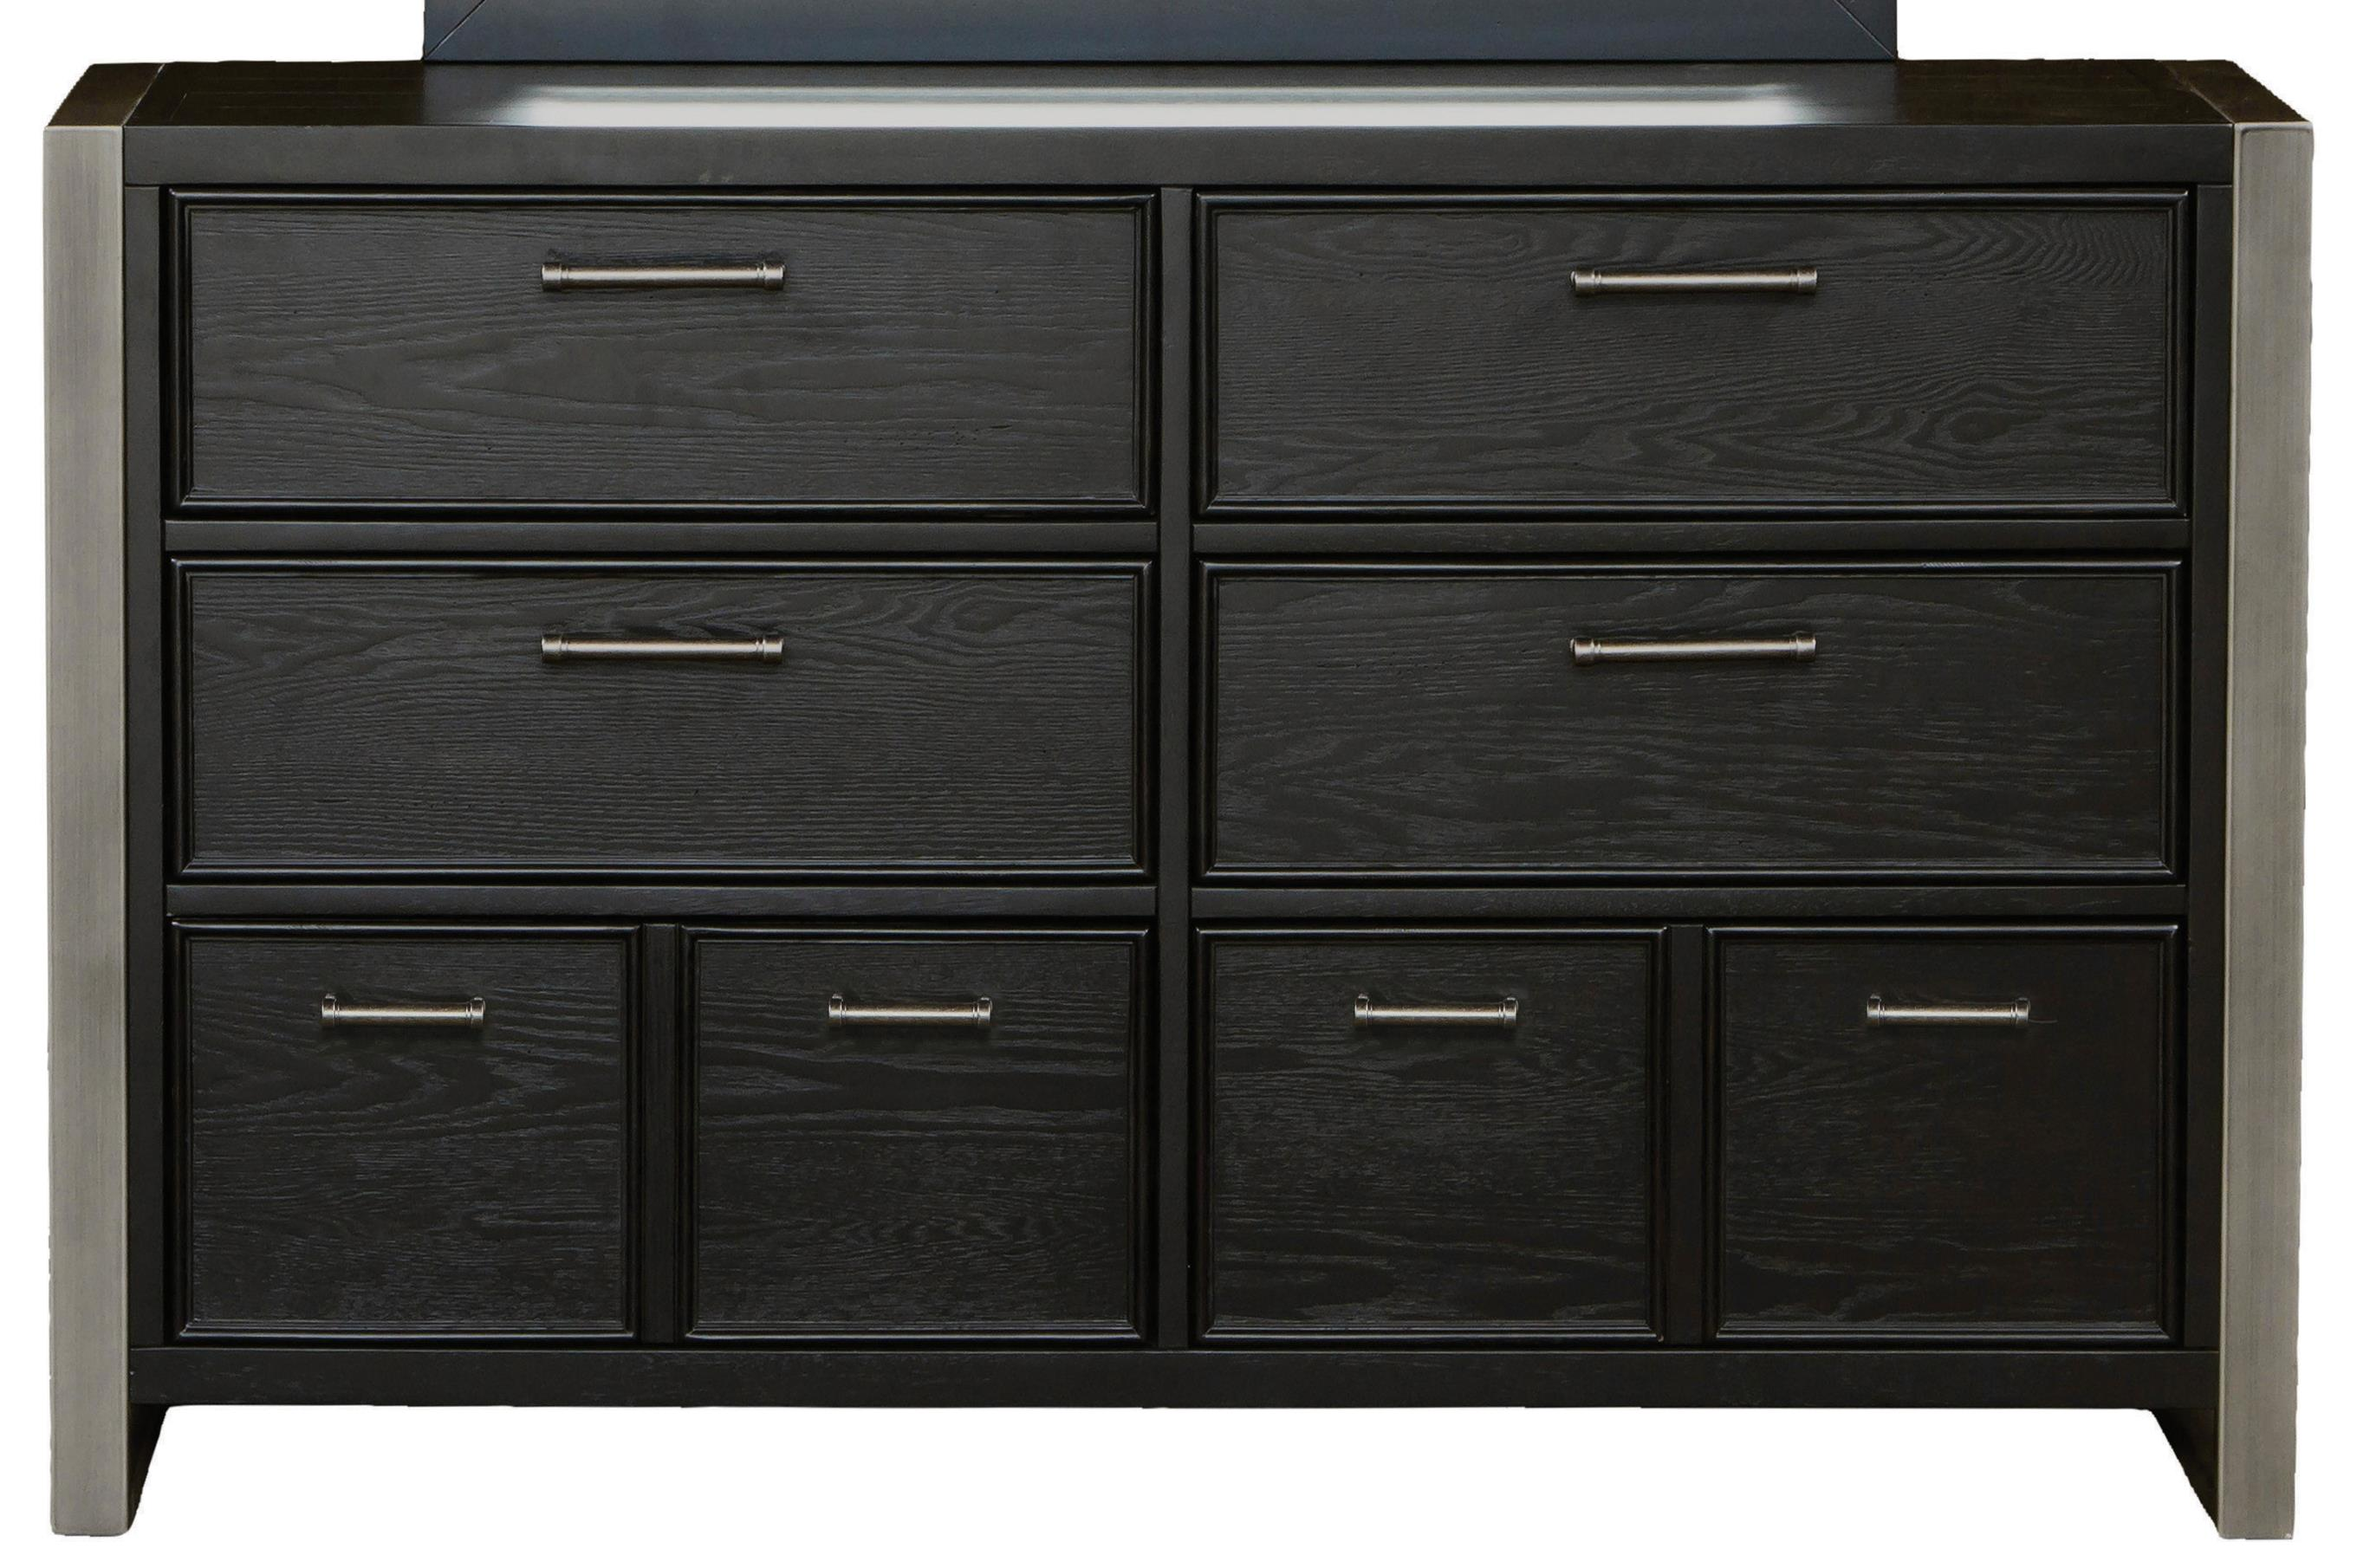 White 8 Drawer Dresser Graphite 8 Drawer Dresser With Silver Metal Bar Hardware By Samuel Lawrence At Rooms For Less